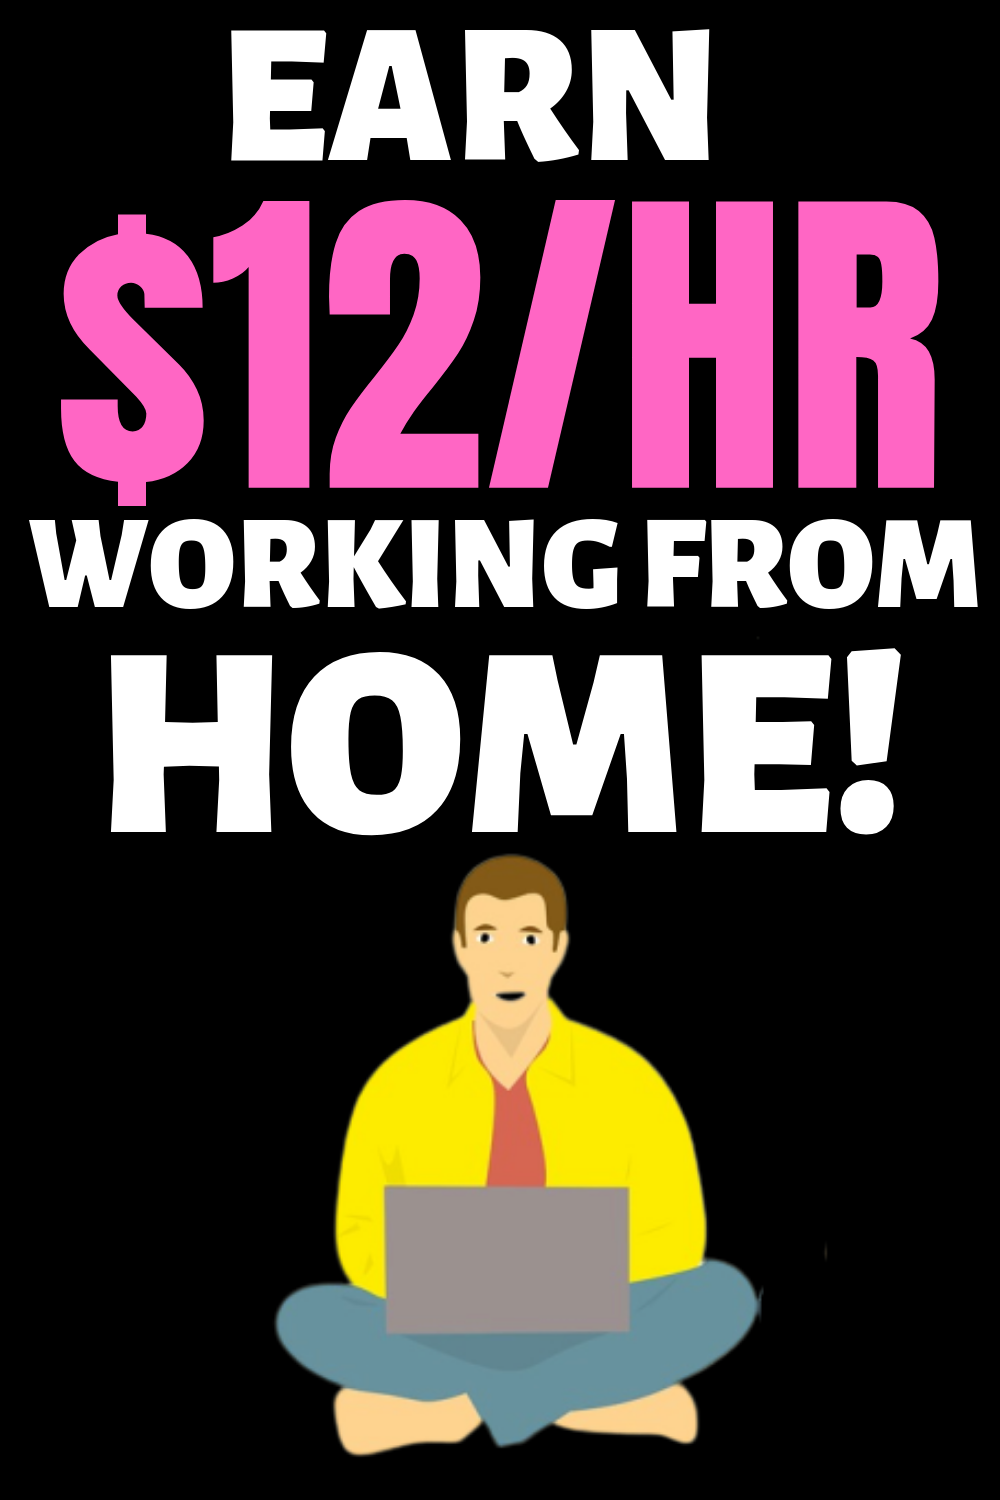 Find out legitimate work from home jobs that pays 12 per